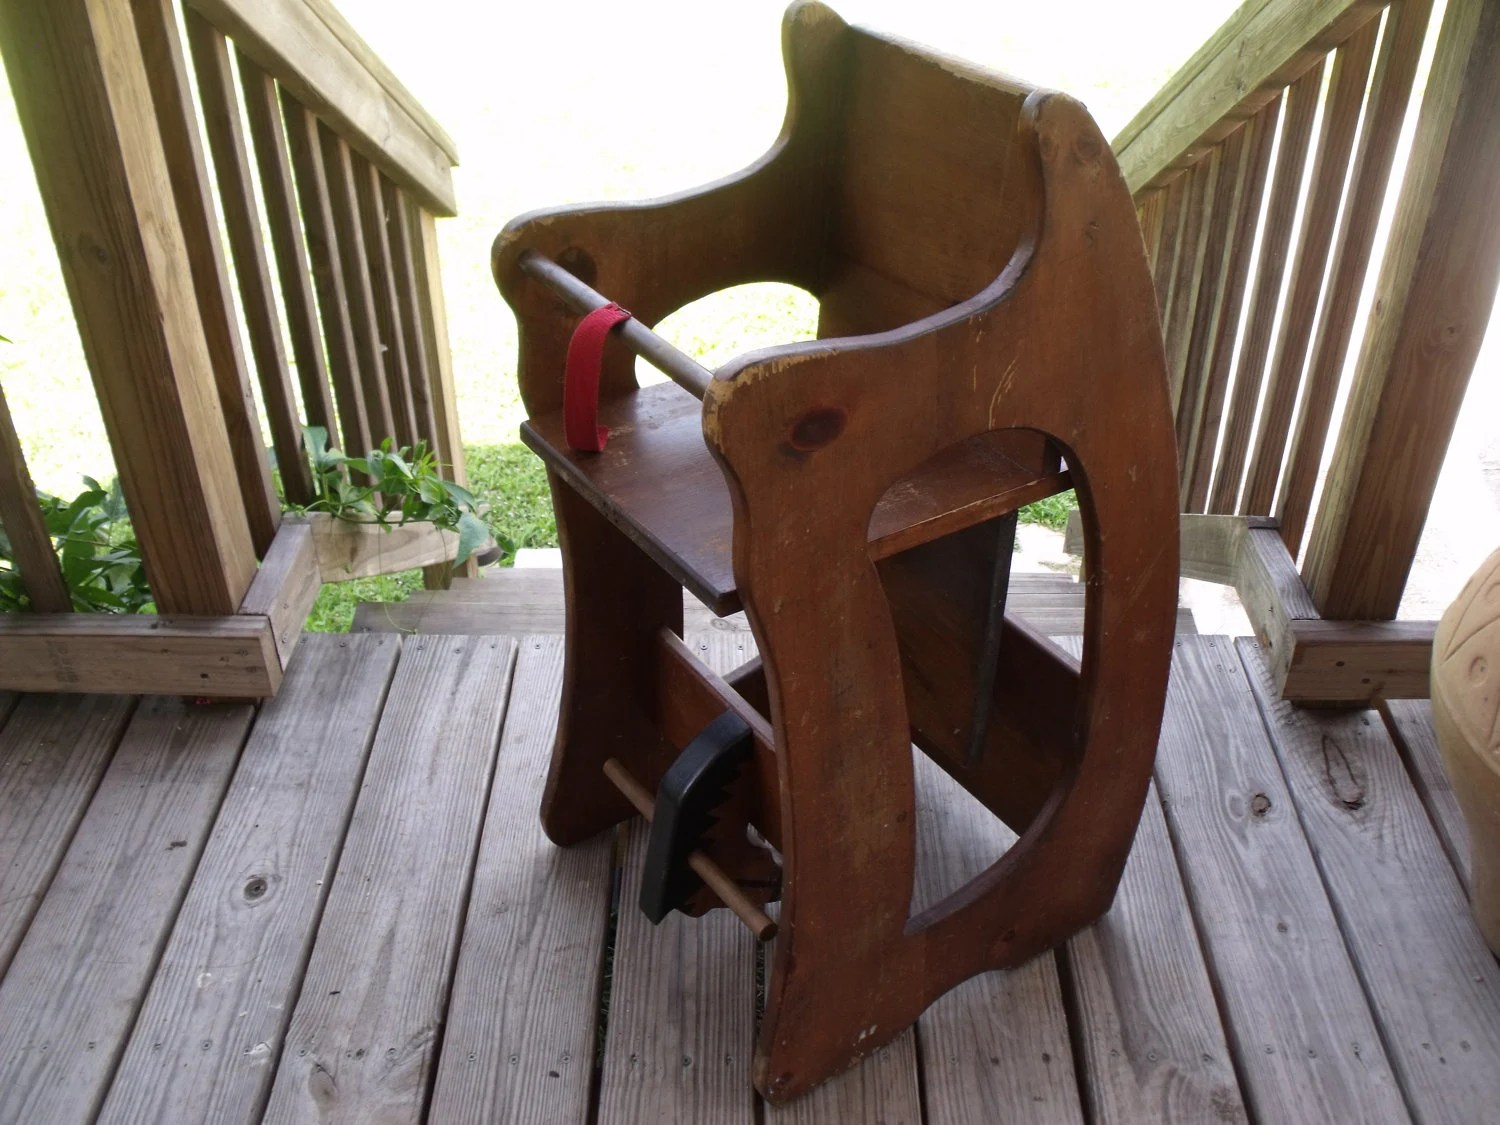 horseshoe rocking chair theo a kochs barber parts 3 in 1 horse high desk childs vintage by